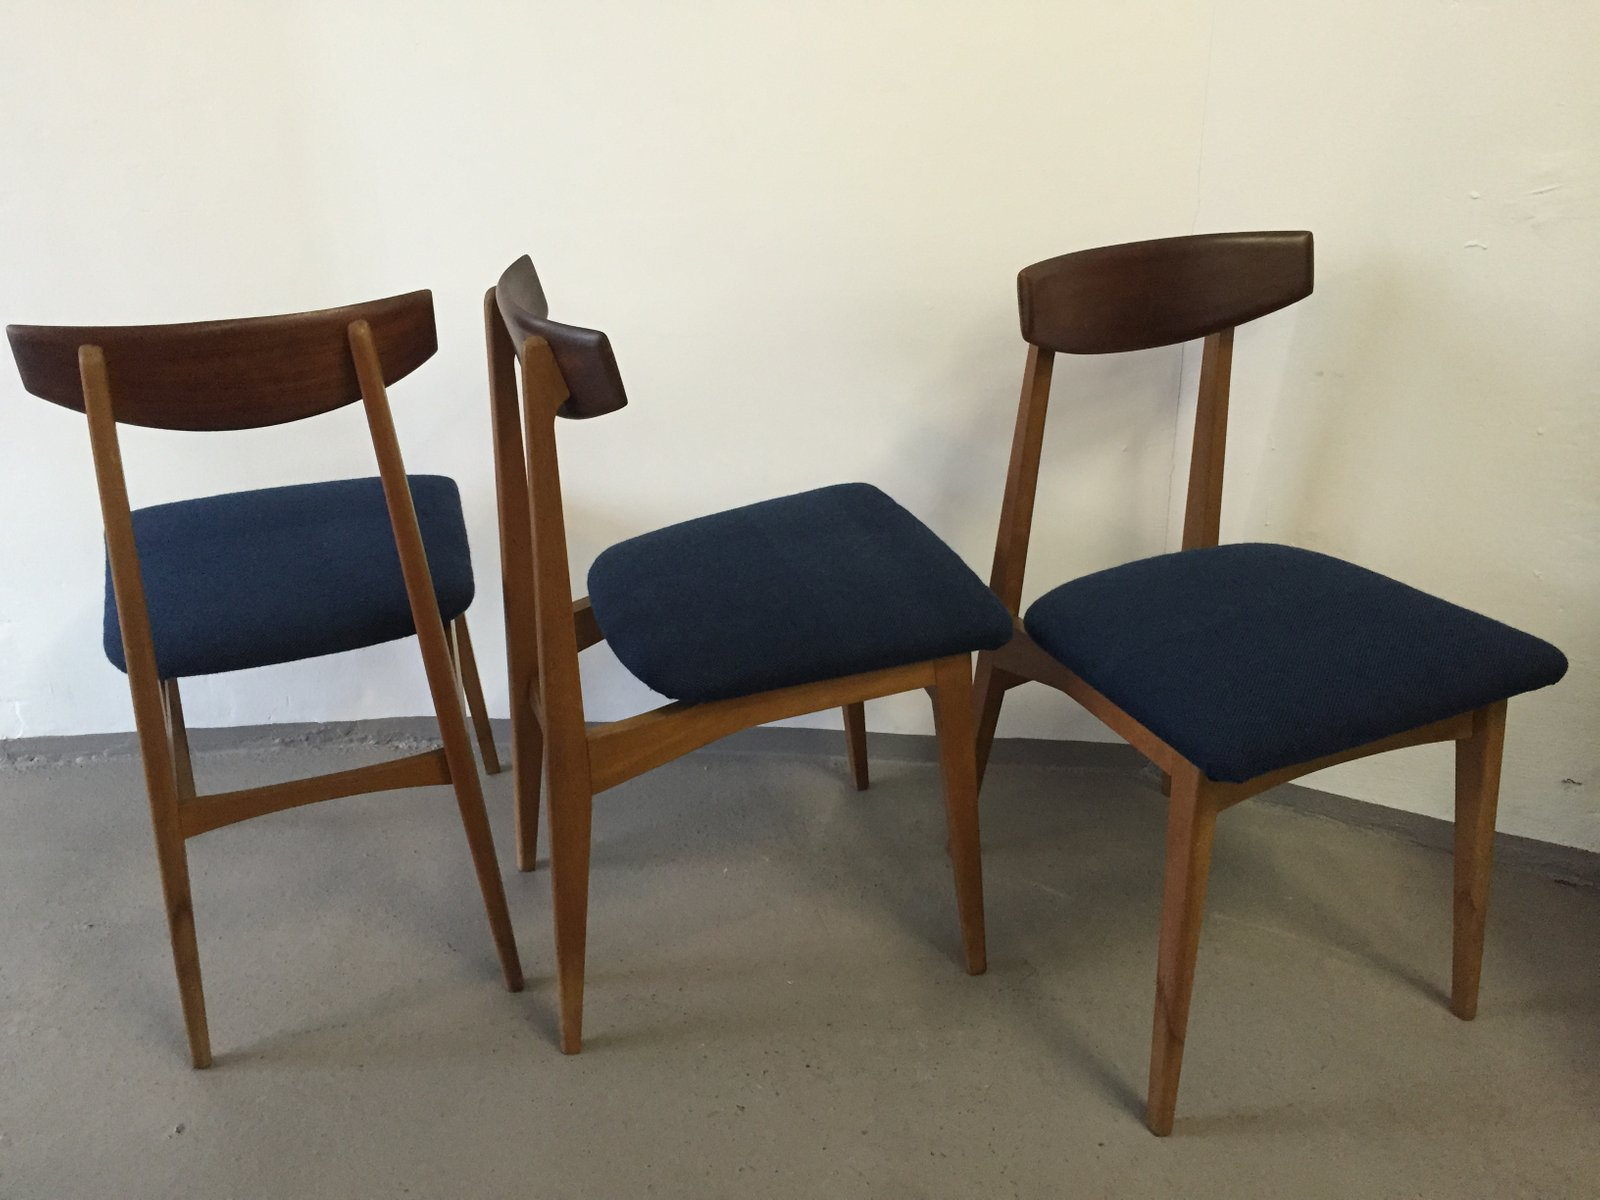 Vintage Teak Dining Chairs Set Of 3 For Sale At Pamono